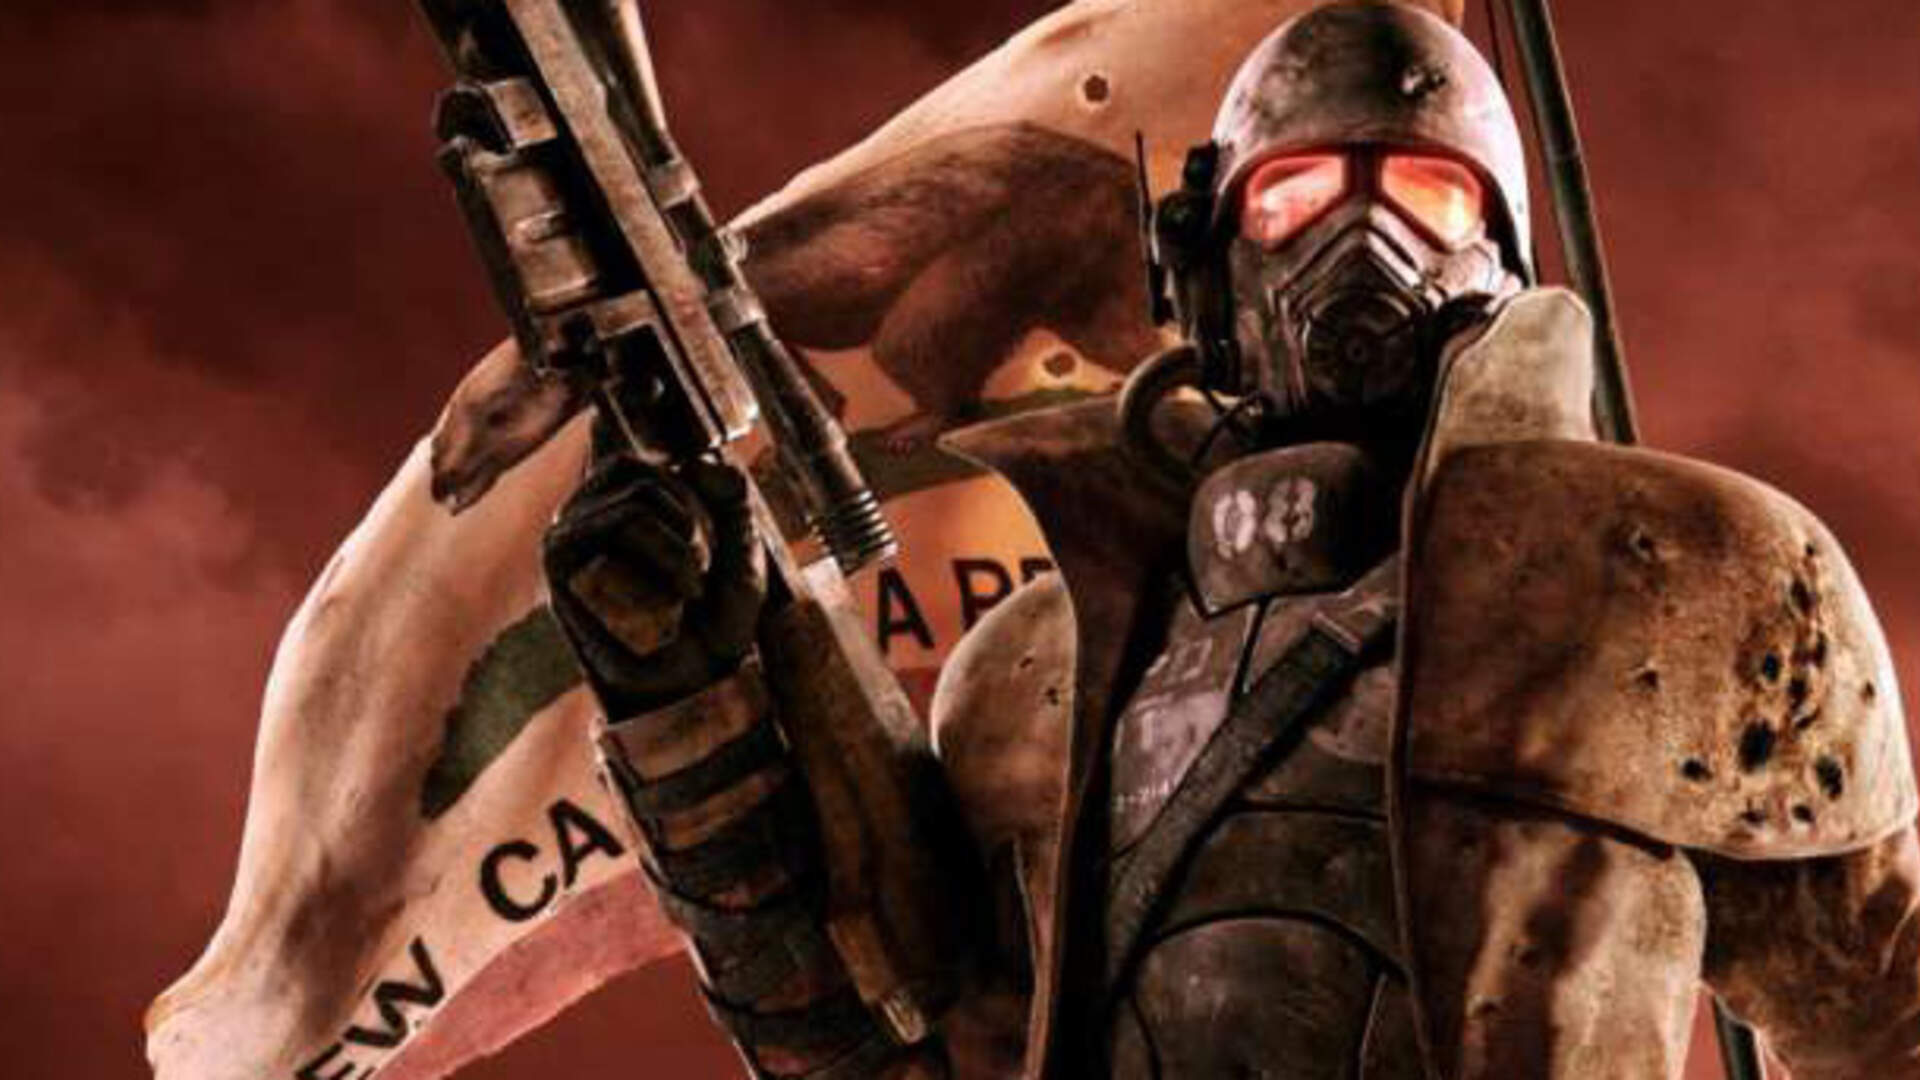 The Top 25 RPGs of All Time #13: Fallout: New Vegas